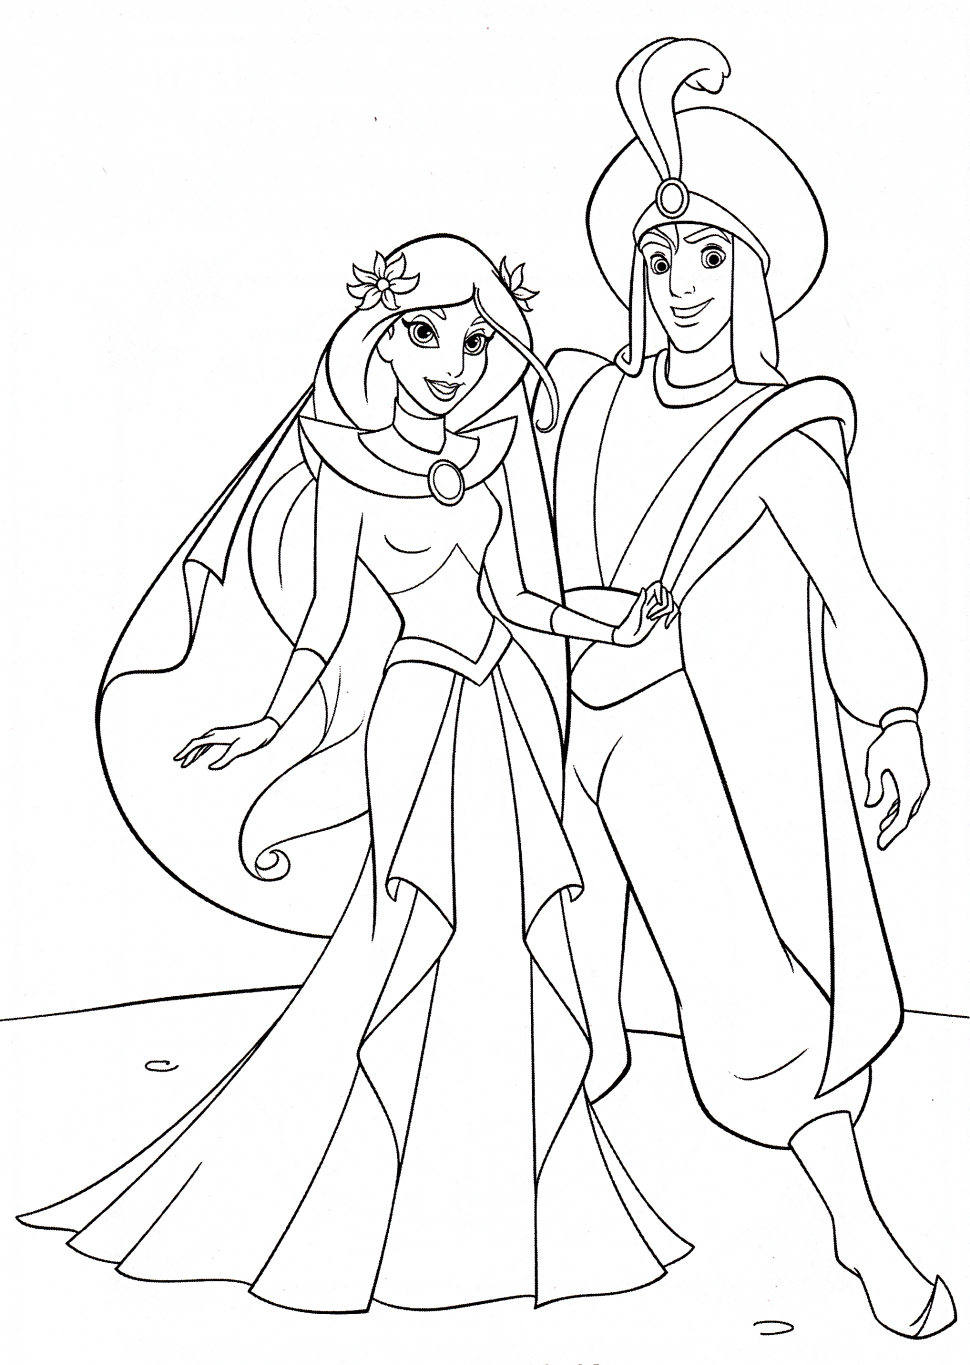 Pin by sugey on dibujos para colorear pinterest disney coloring